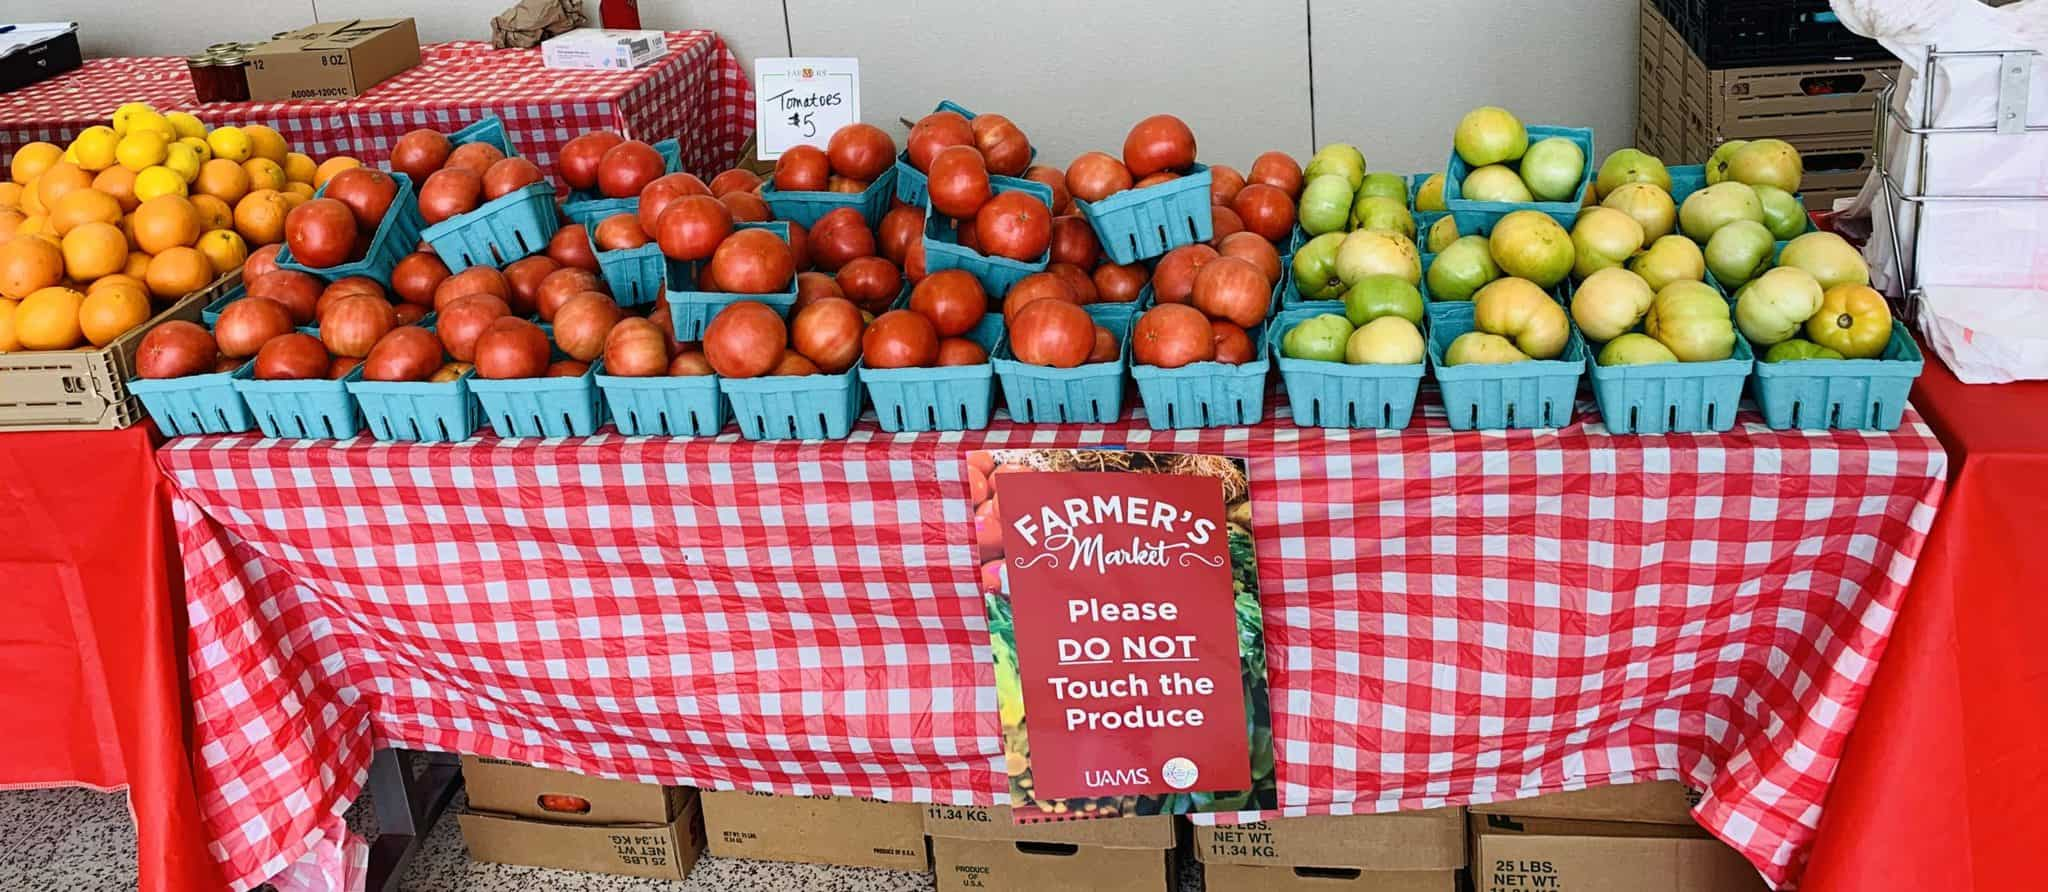 A variety of fruits and vegetables are available for purchase at the Farmers Market.